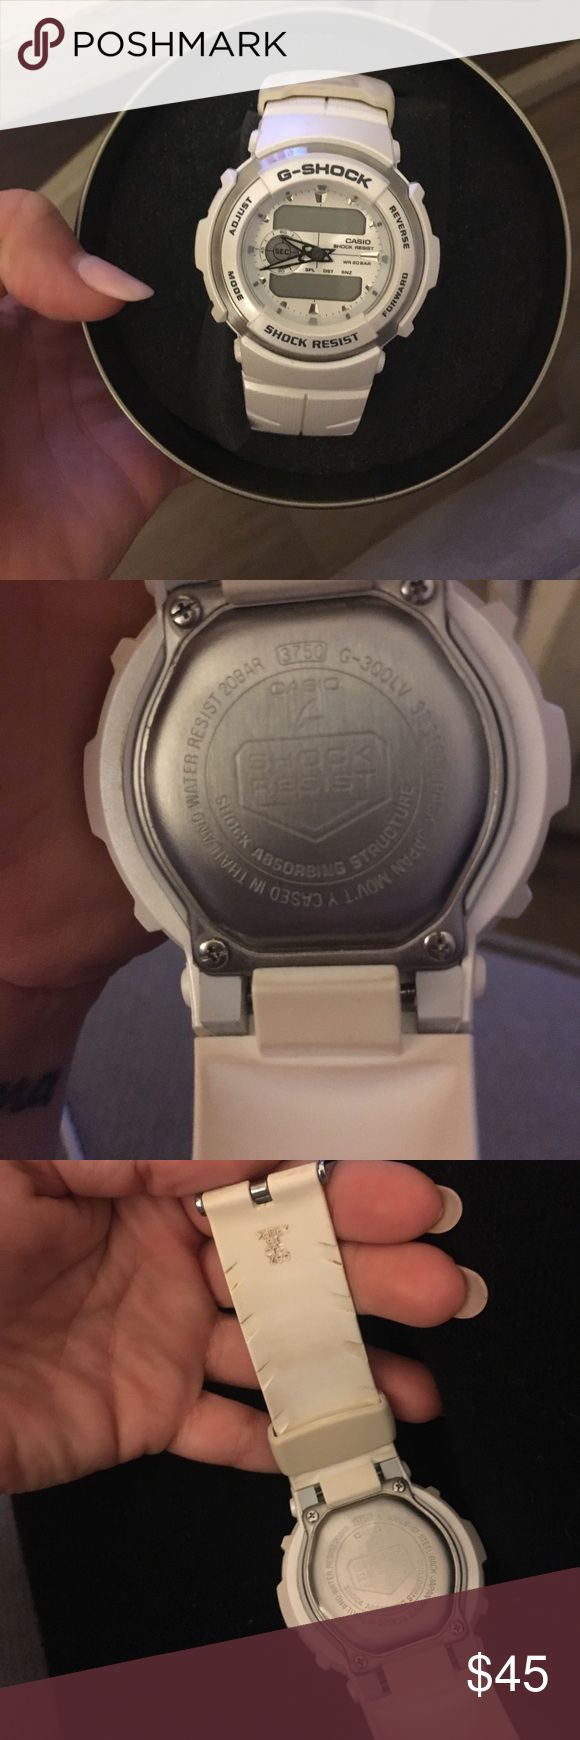 G-shock white and silver watch. G-shock white and silver watch. Battery is dead G-Shock Other